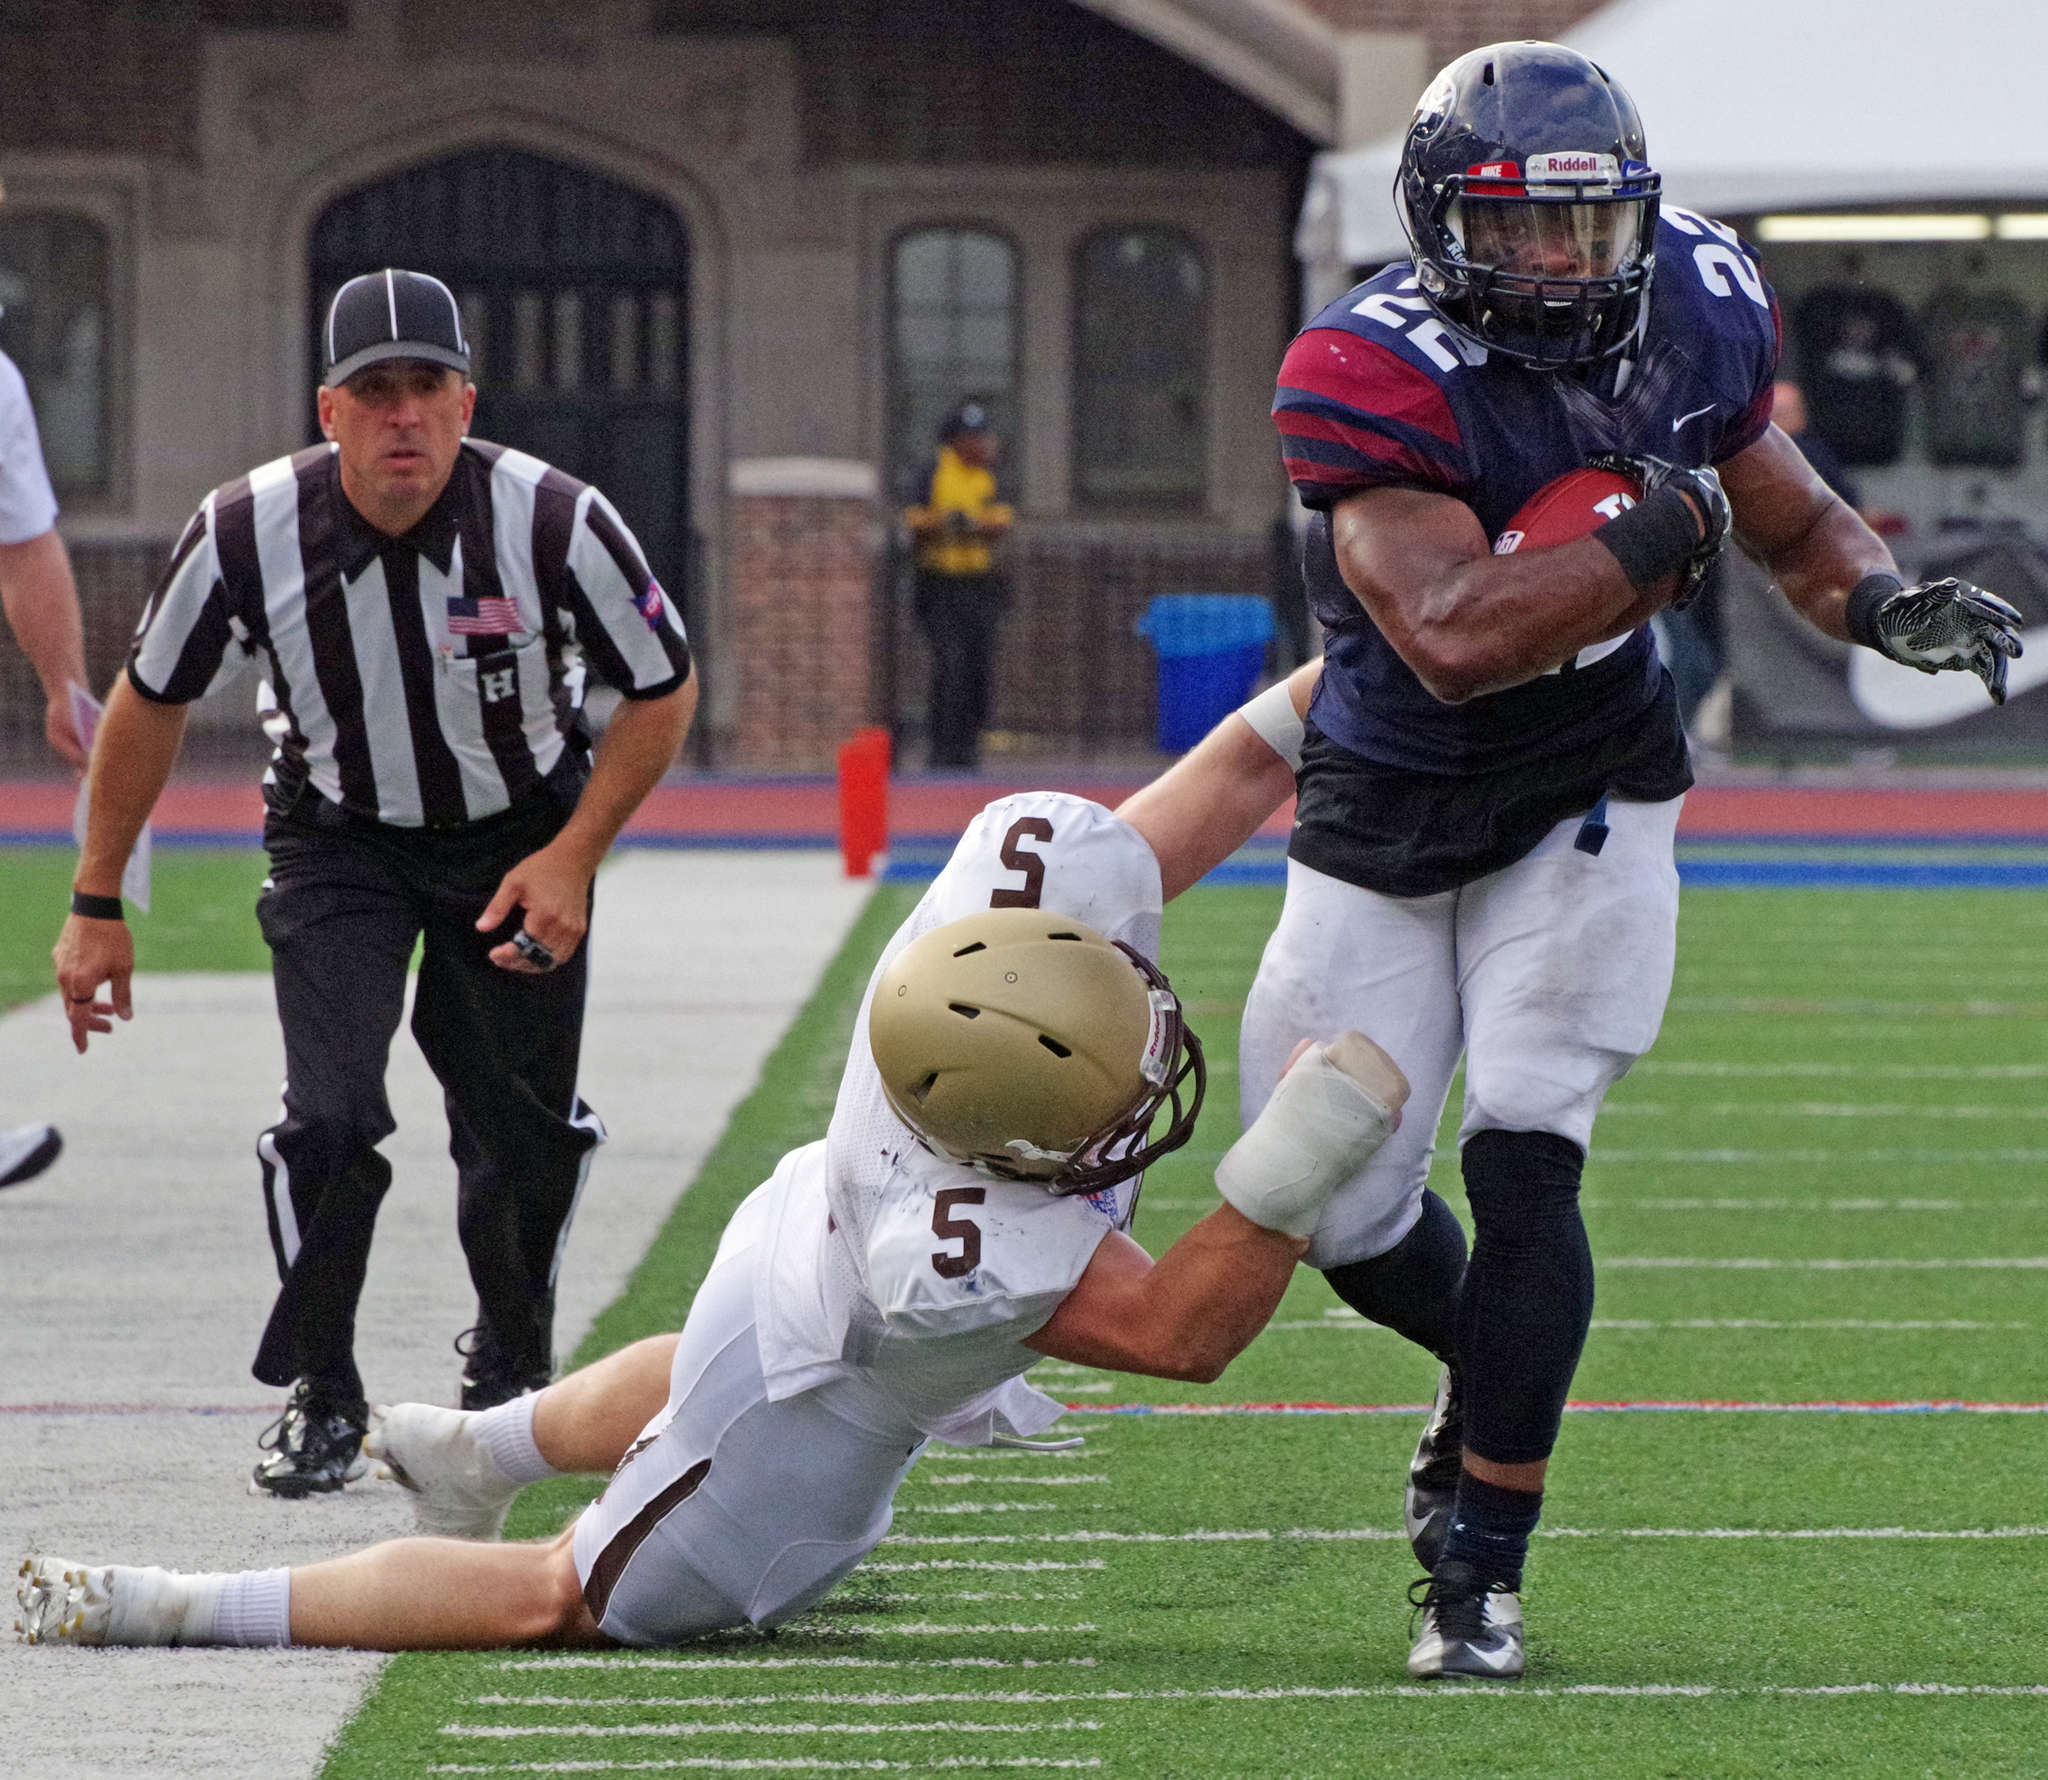 Running back Tre Solomon suffered a serious left knee injury in 2014. DON FELICE/Penn Athletics